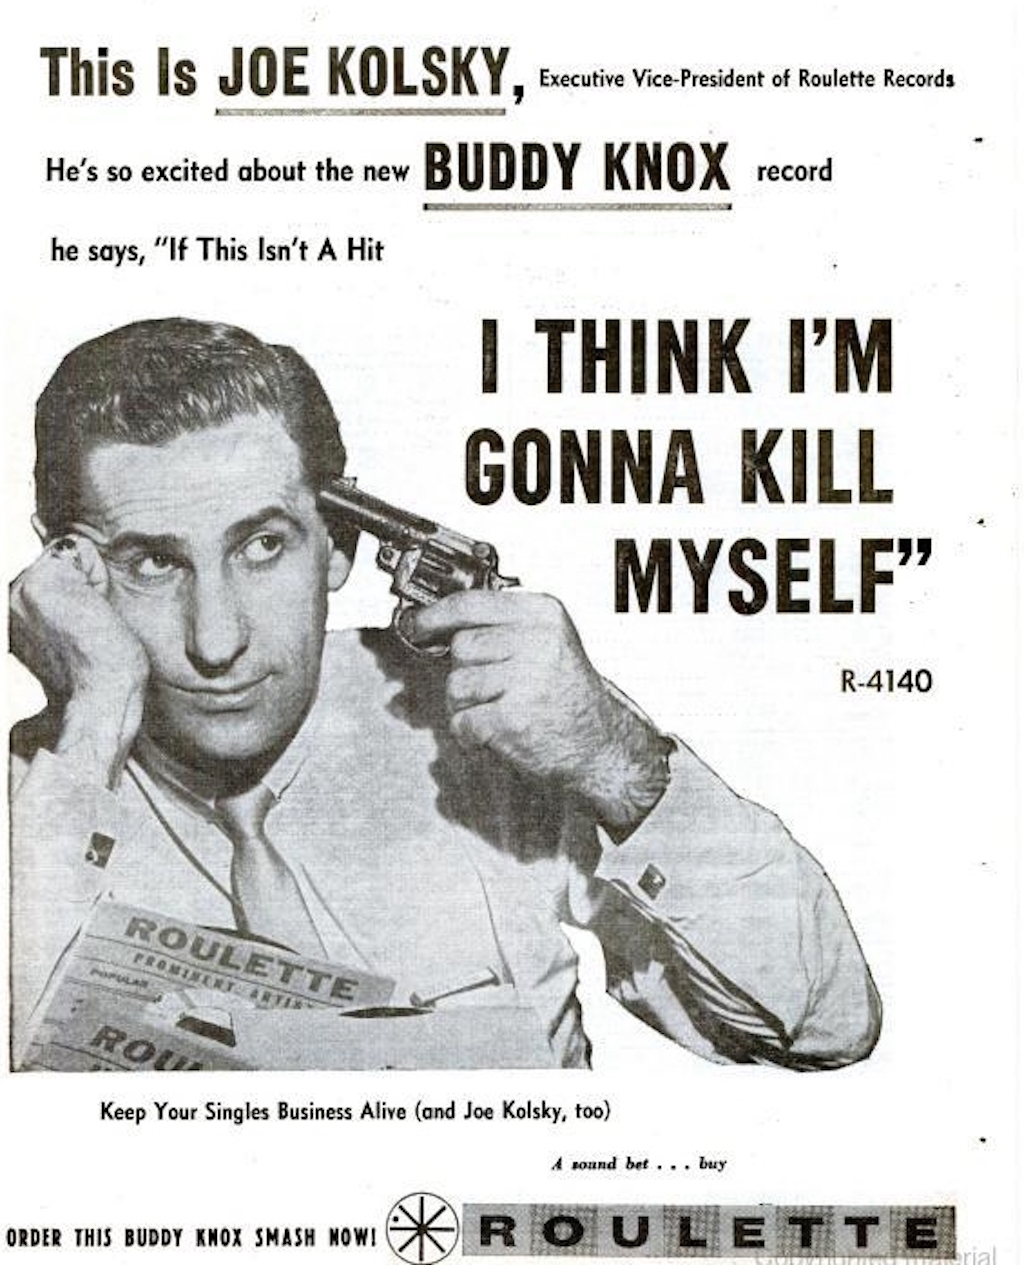 Joe Kolsky--Billboard March 23, 1959